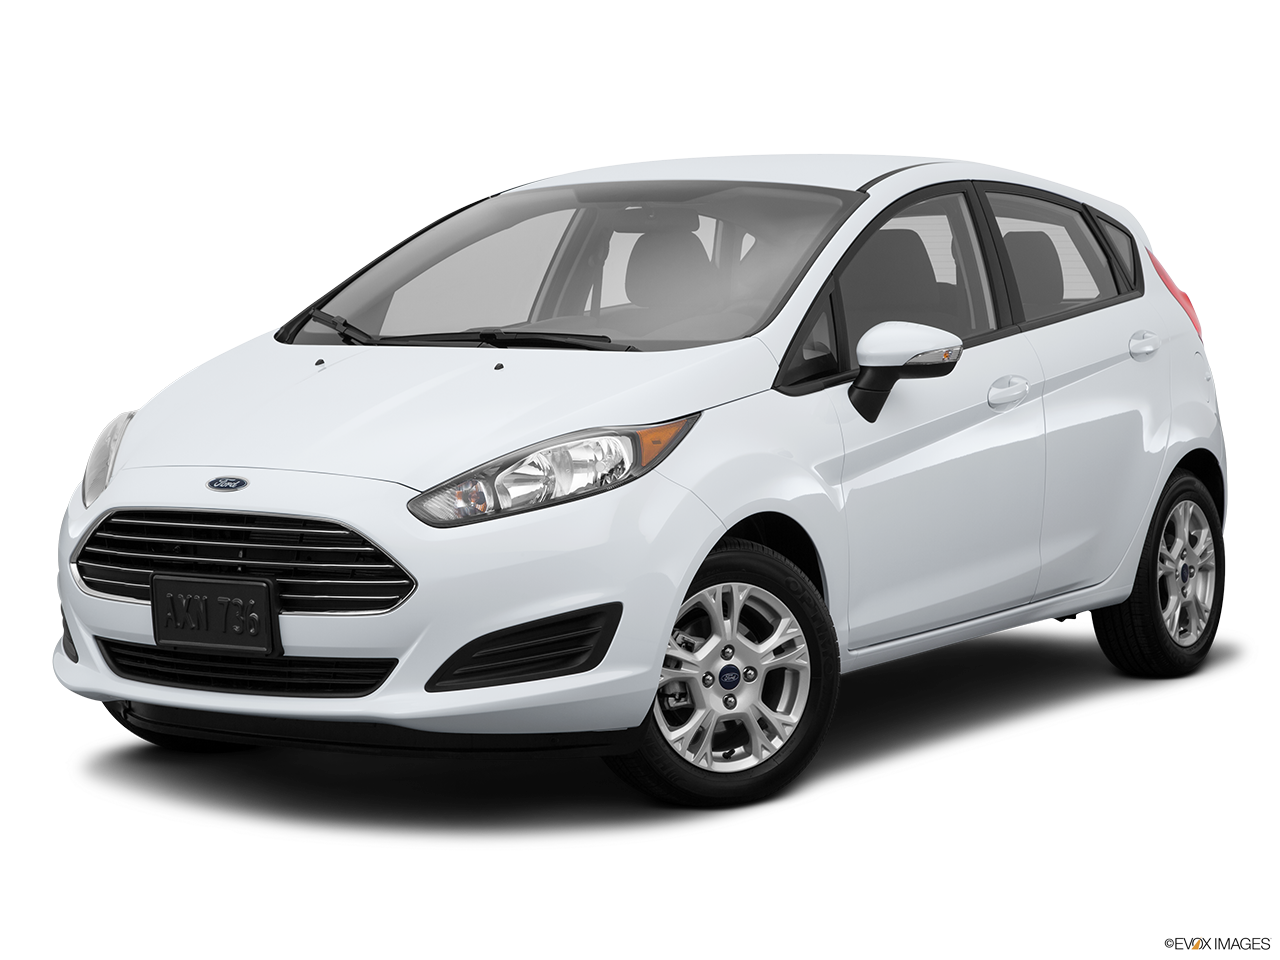 Test Drive A 2015 Ford Fiesta at Doenges Ford in Tulsa